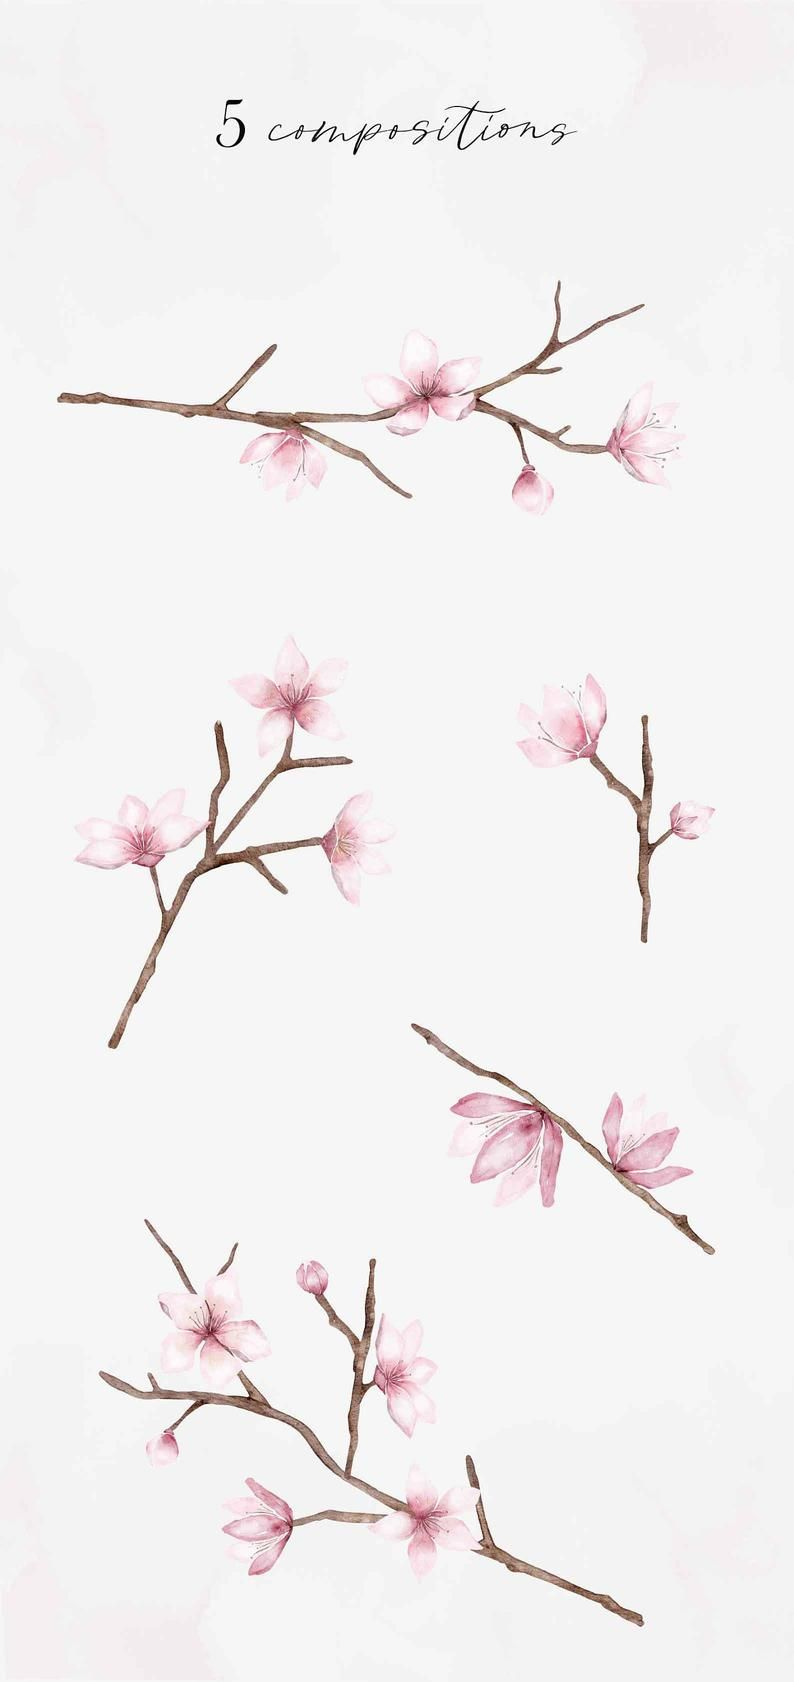 Watercolor Cherry Blossom Branches Botanical Foliage Leaves Etsy In 2021 Cherry Blossom Art Cherry Blossom Branch Cherry Blossom Painting